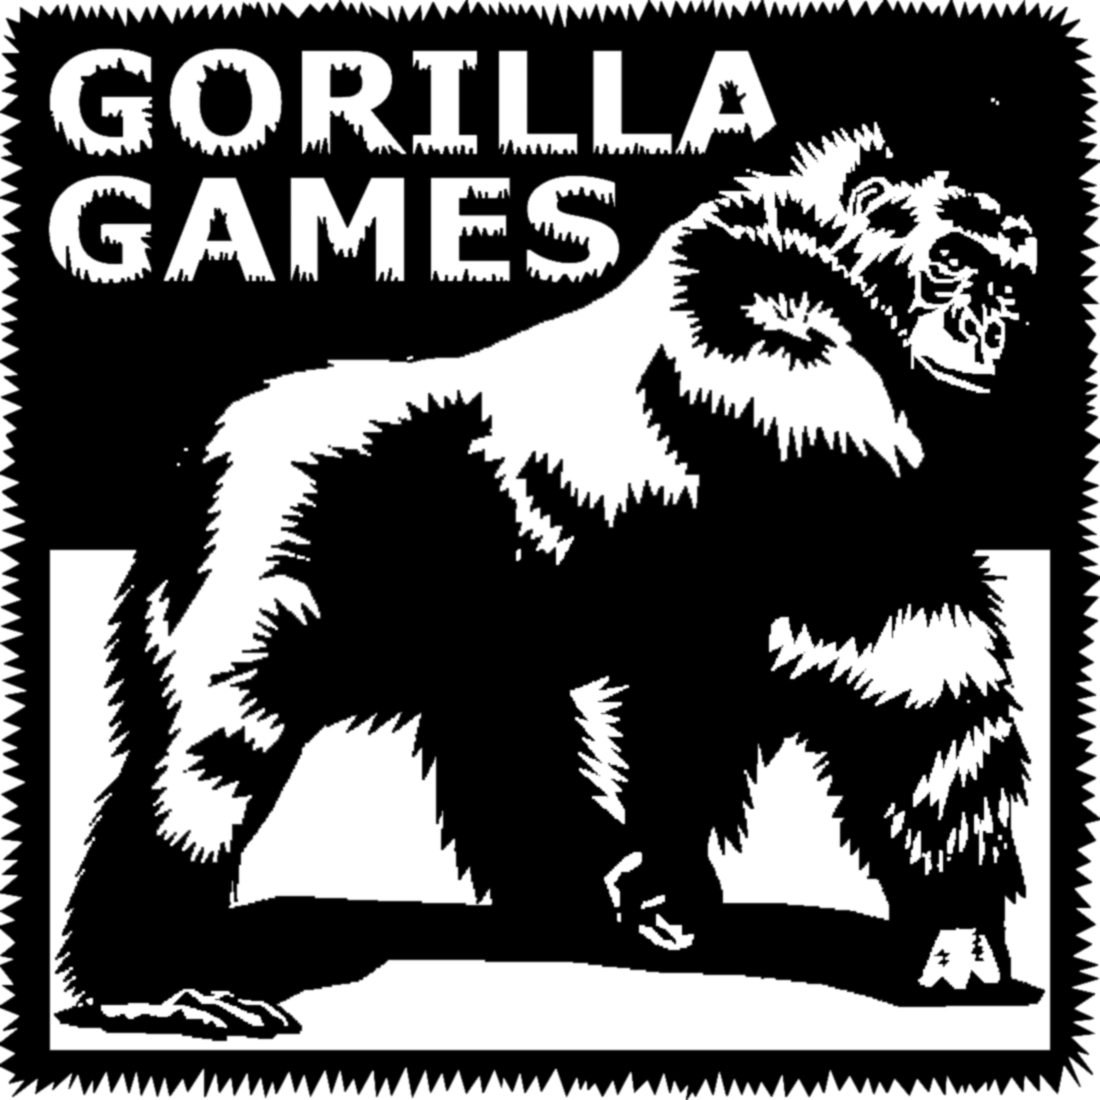 Gorilla Board Games